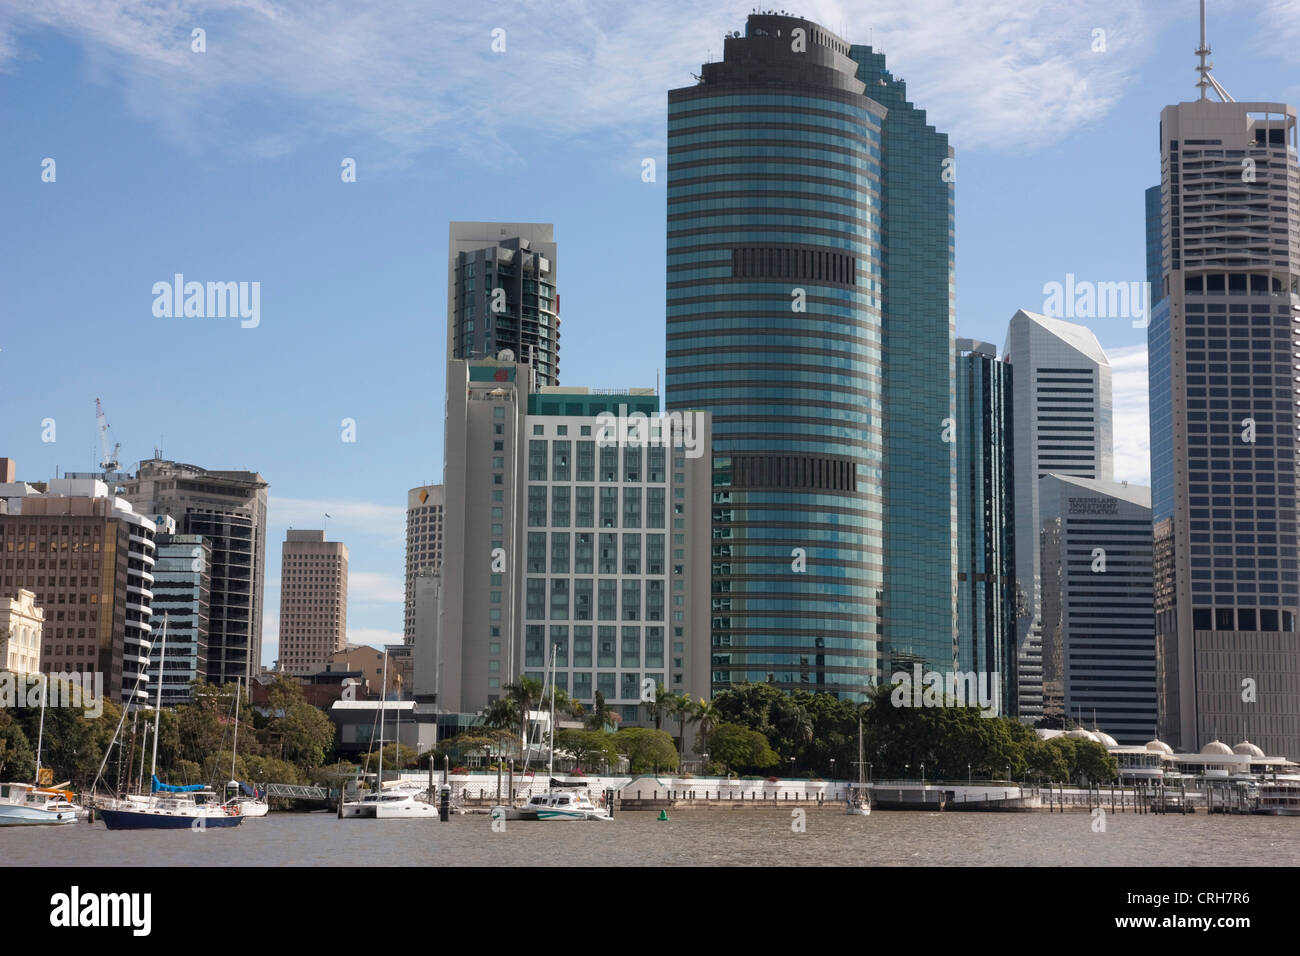 View of the Brisbane city from the Brisbane river at Queensland Australia - Stock Image